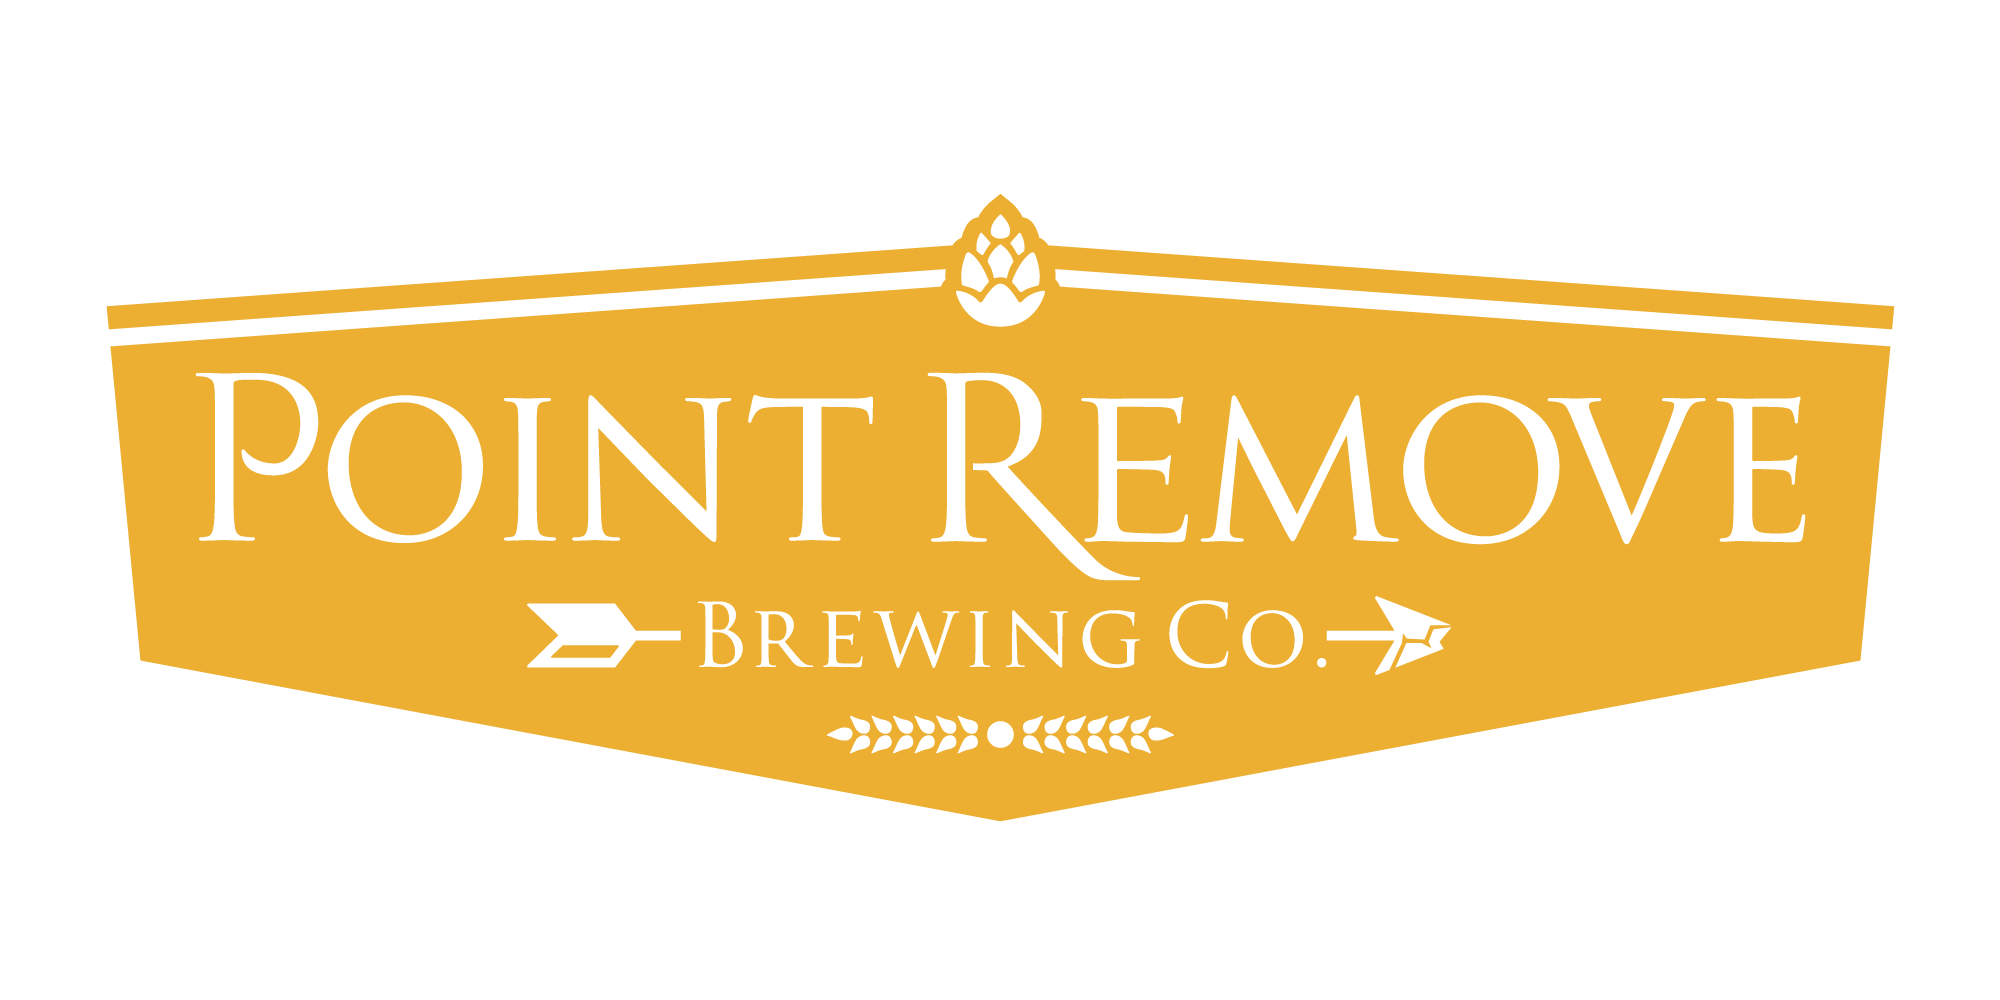 Point Remove Brewing Company Website Header